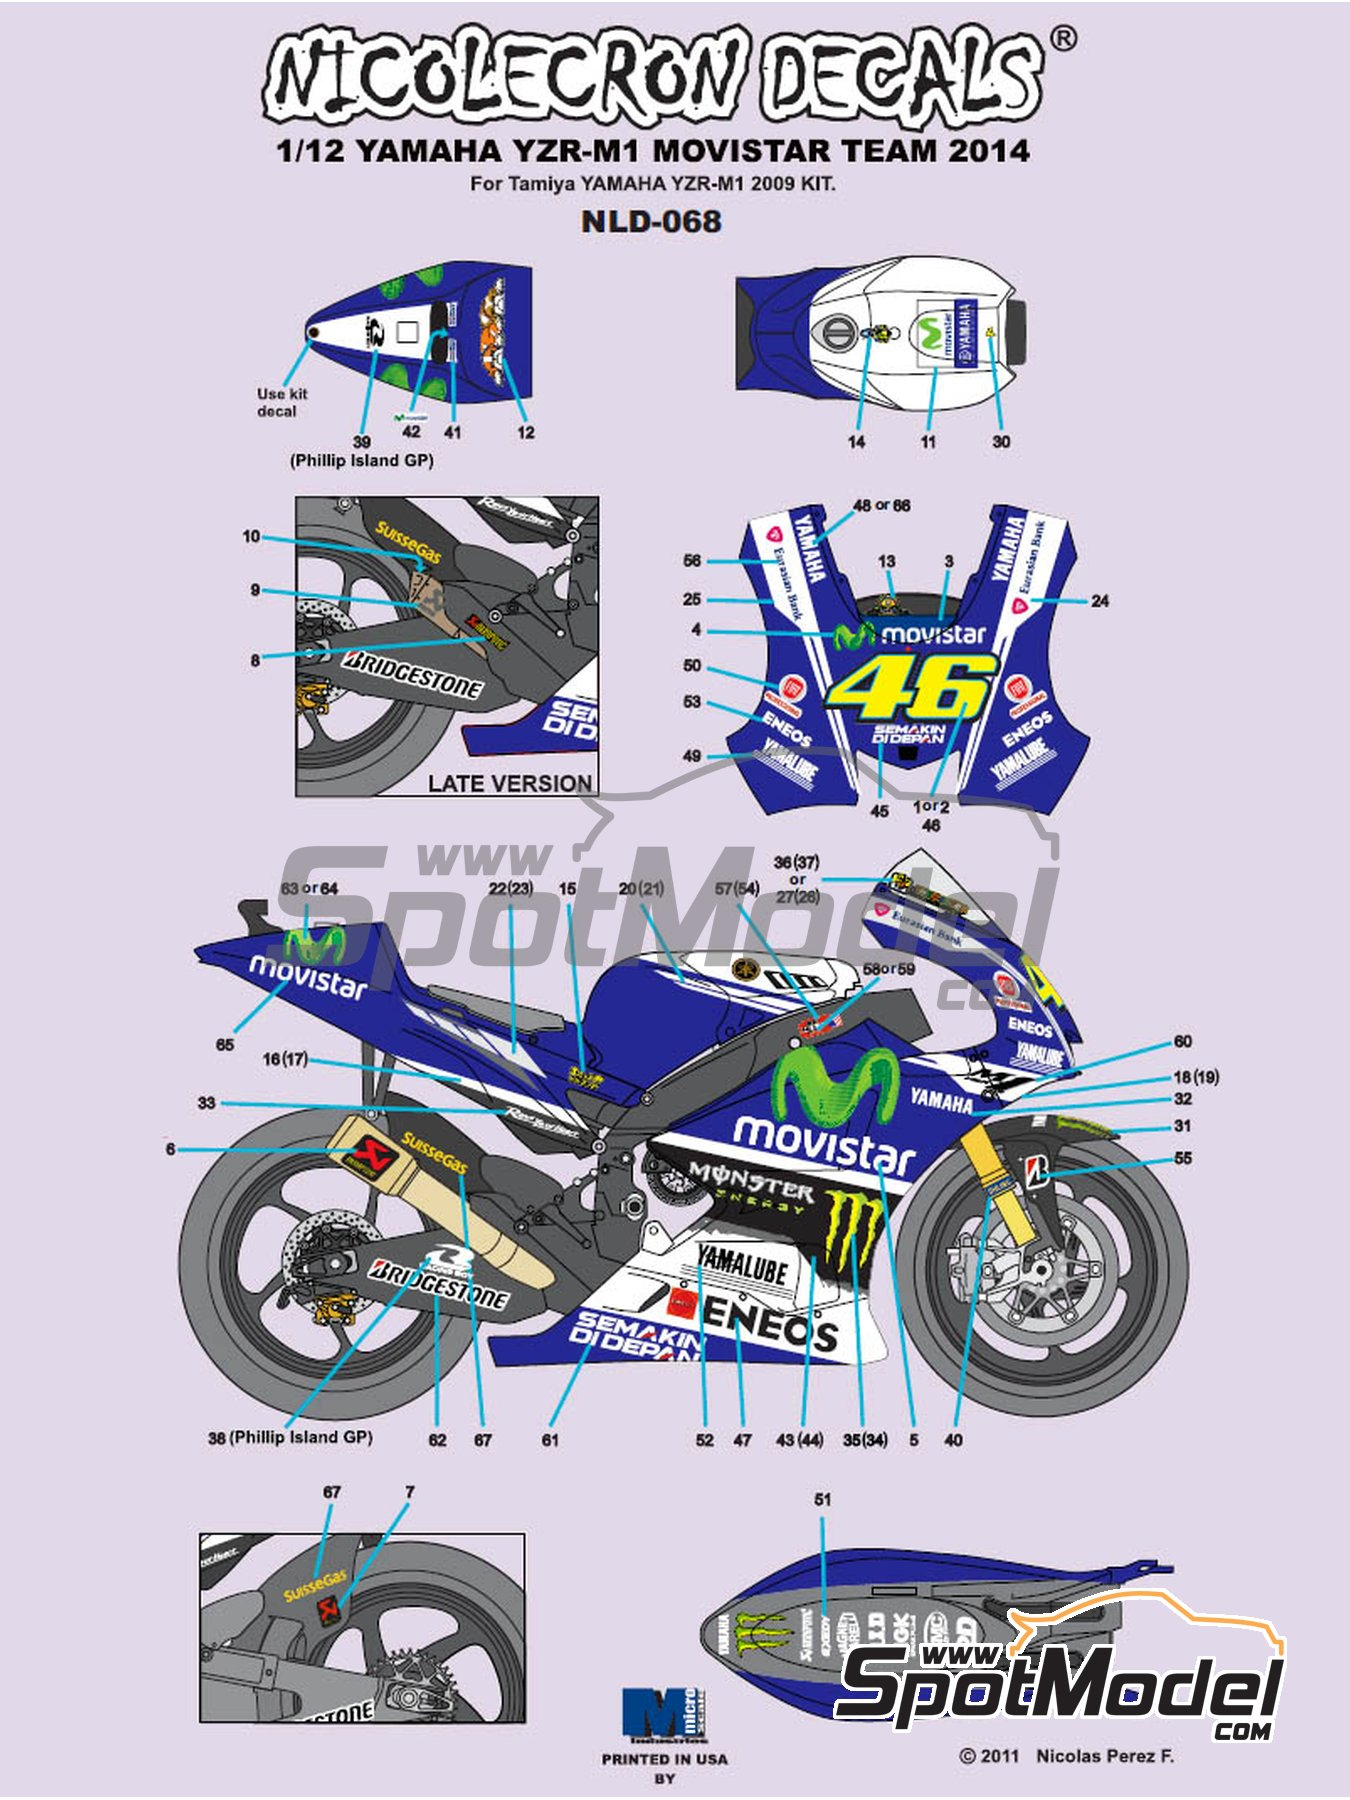 Yamaha YZR-M1 Movistar Team - Motorcycle World Championship 2014 | Marking / livery in 1/12 scale manufactured by Nicolecron Decals (ref. NLD-068) image